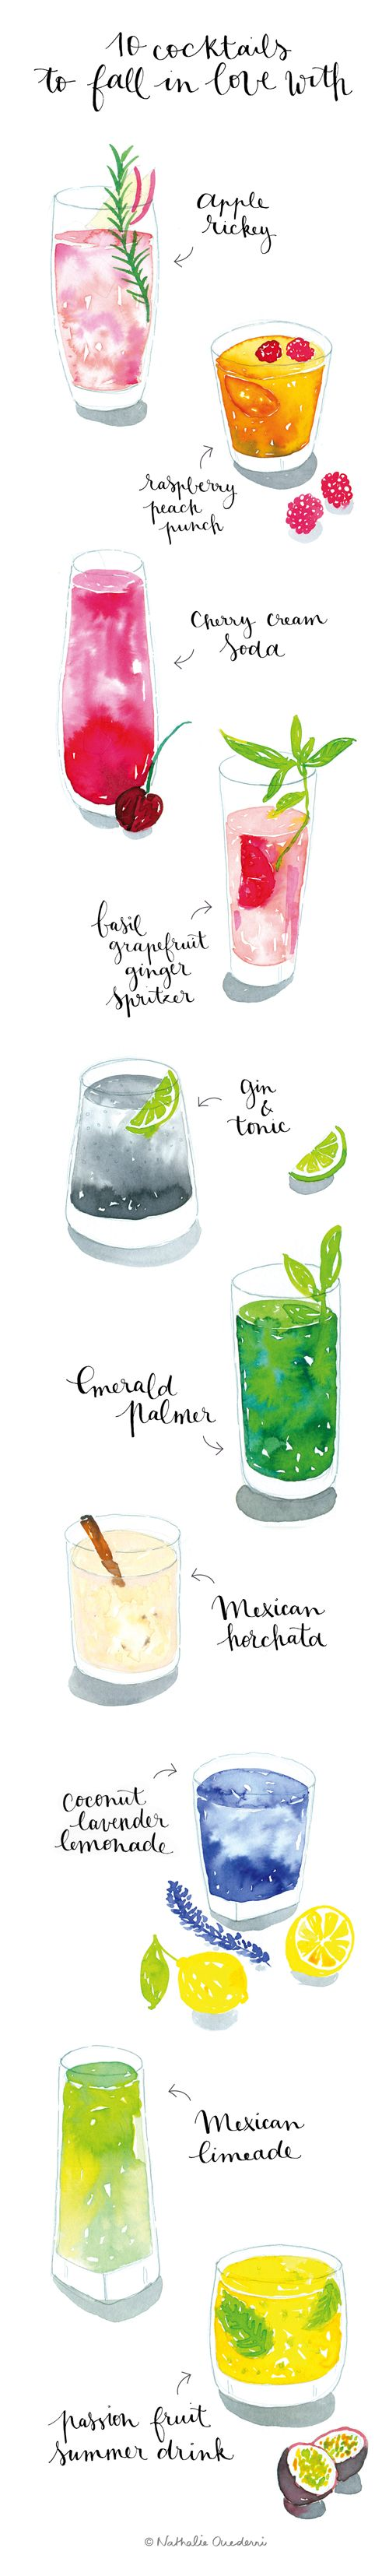 Food Illustration | watercolor cocktails by Nathalie Ouederni